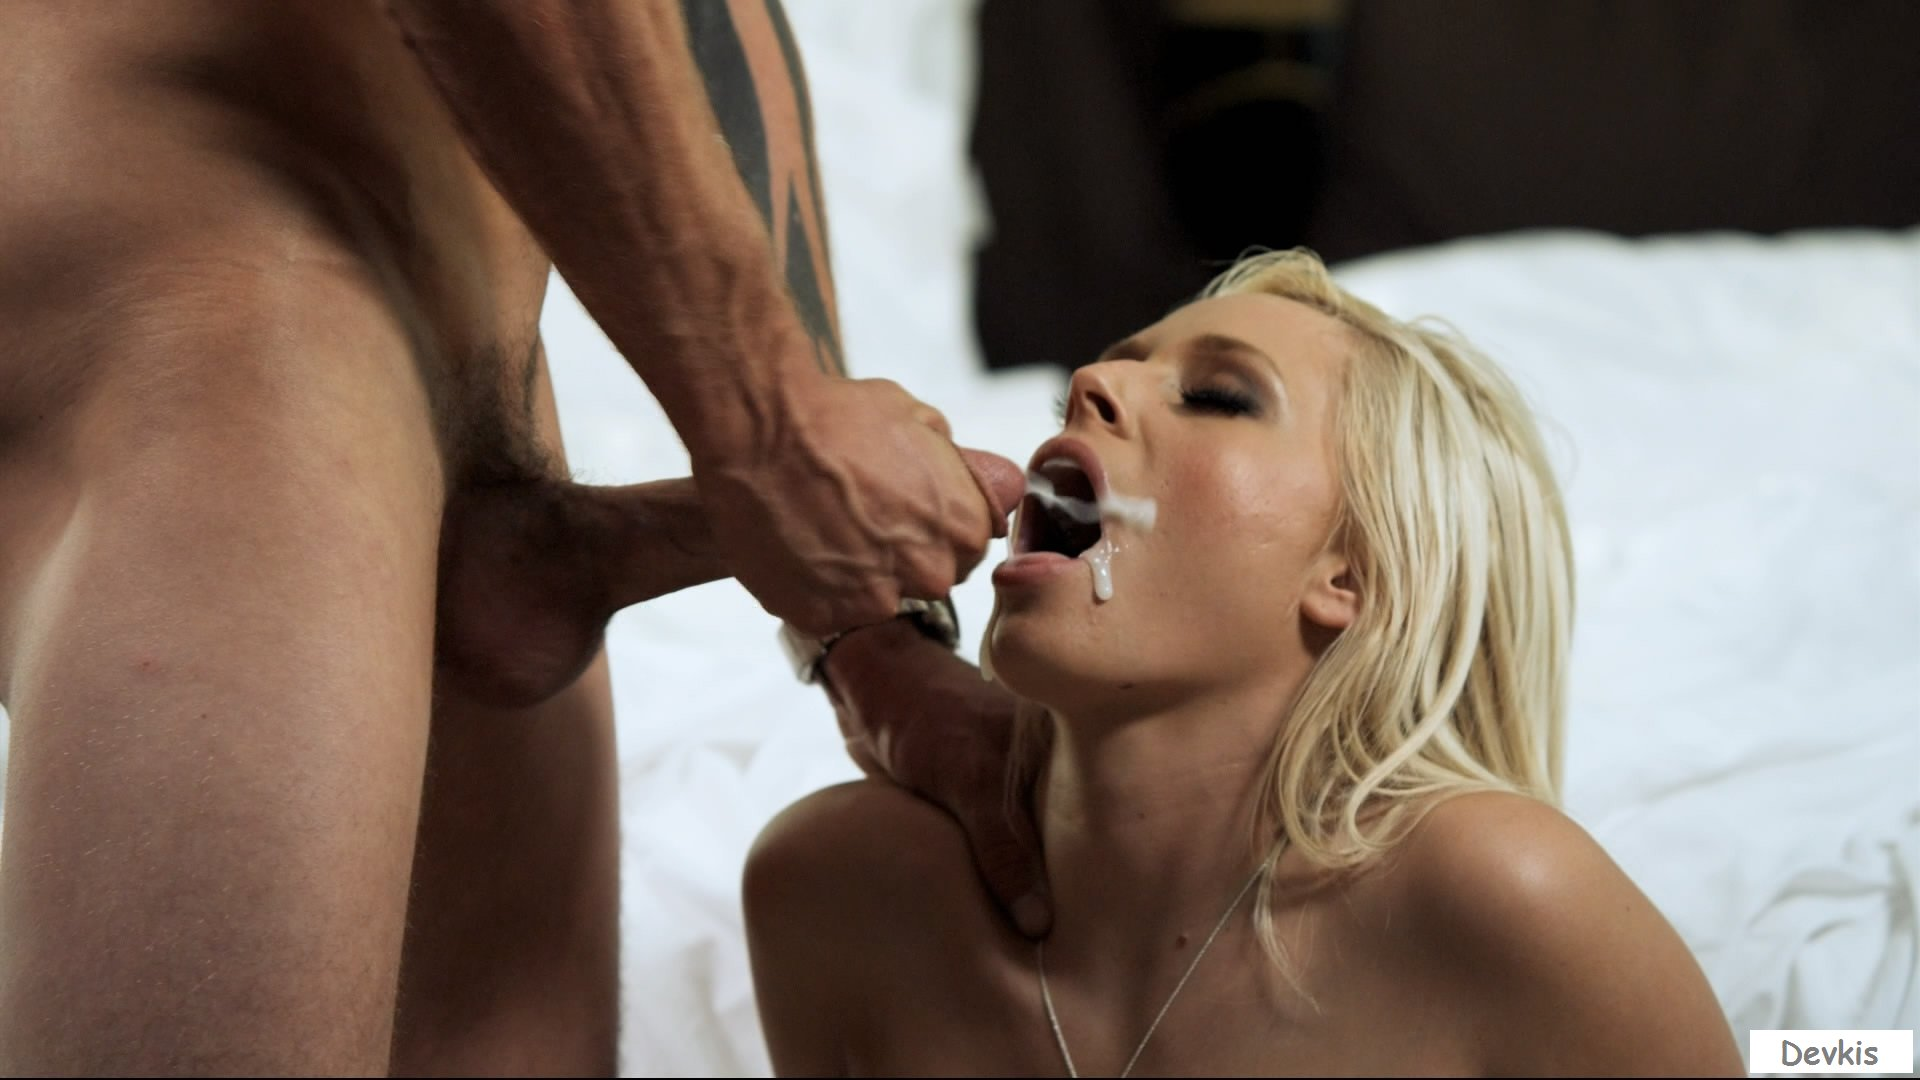 Jesse jane new daftsex